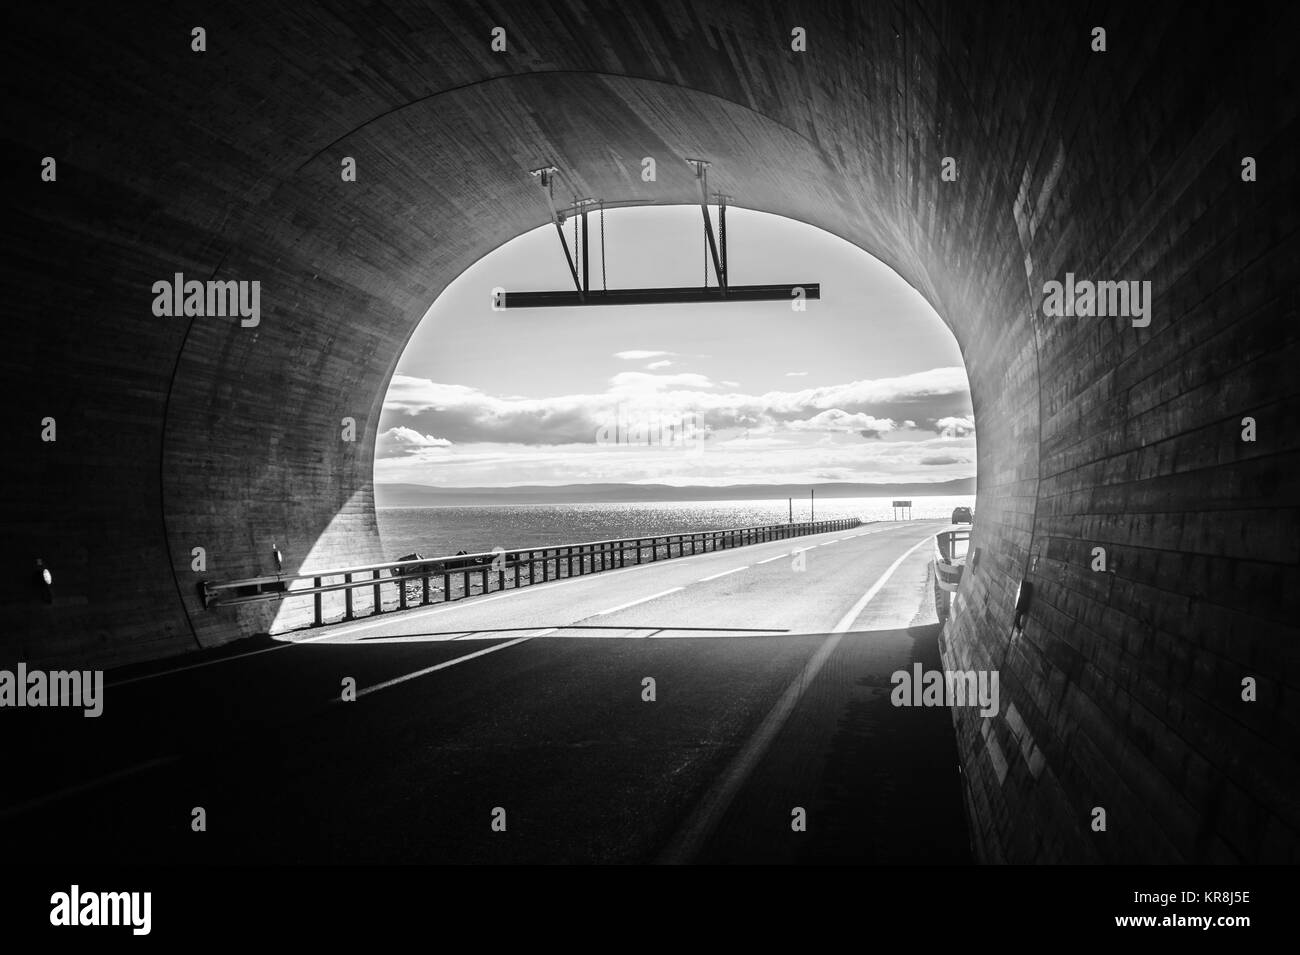 View from the tunnel to the blue cloudy sky and sea, Finnmark, Norway - Stock Image